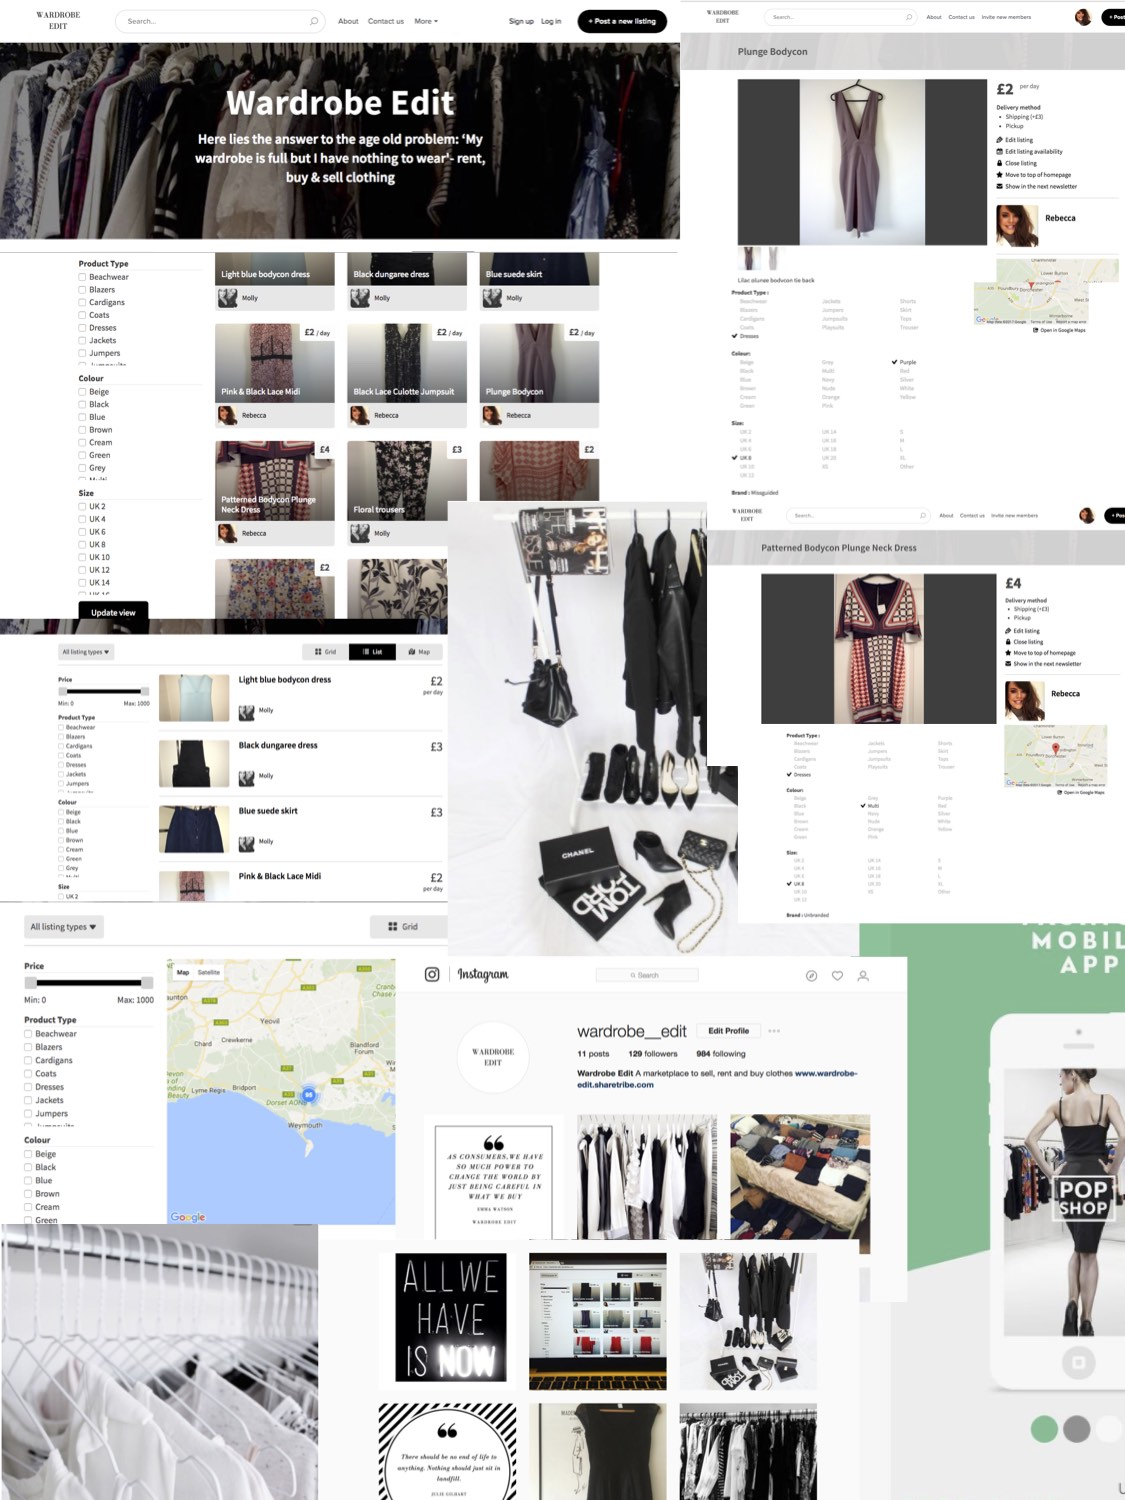 he Shift of Consumption is From Ownership to Access. Will the Sharing Economy Be Fundamental in Shaping a Sustainable Future for the Fashion Industry? Mood board of the marketplace by Rebecca Mercedes.